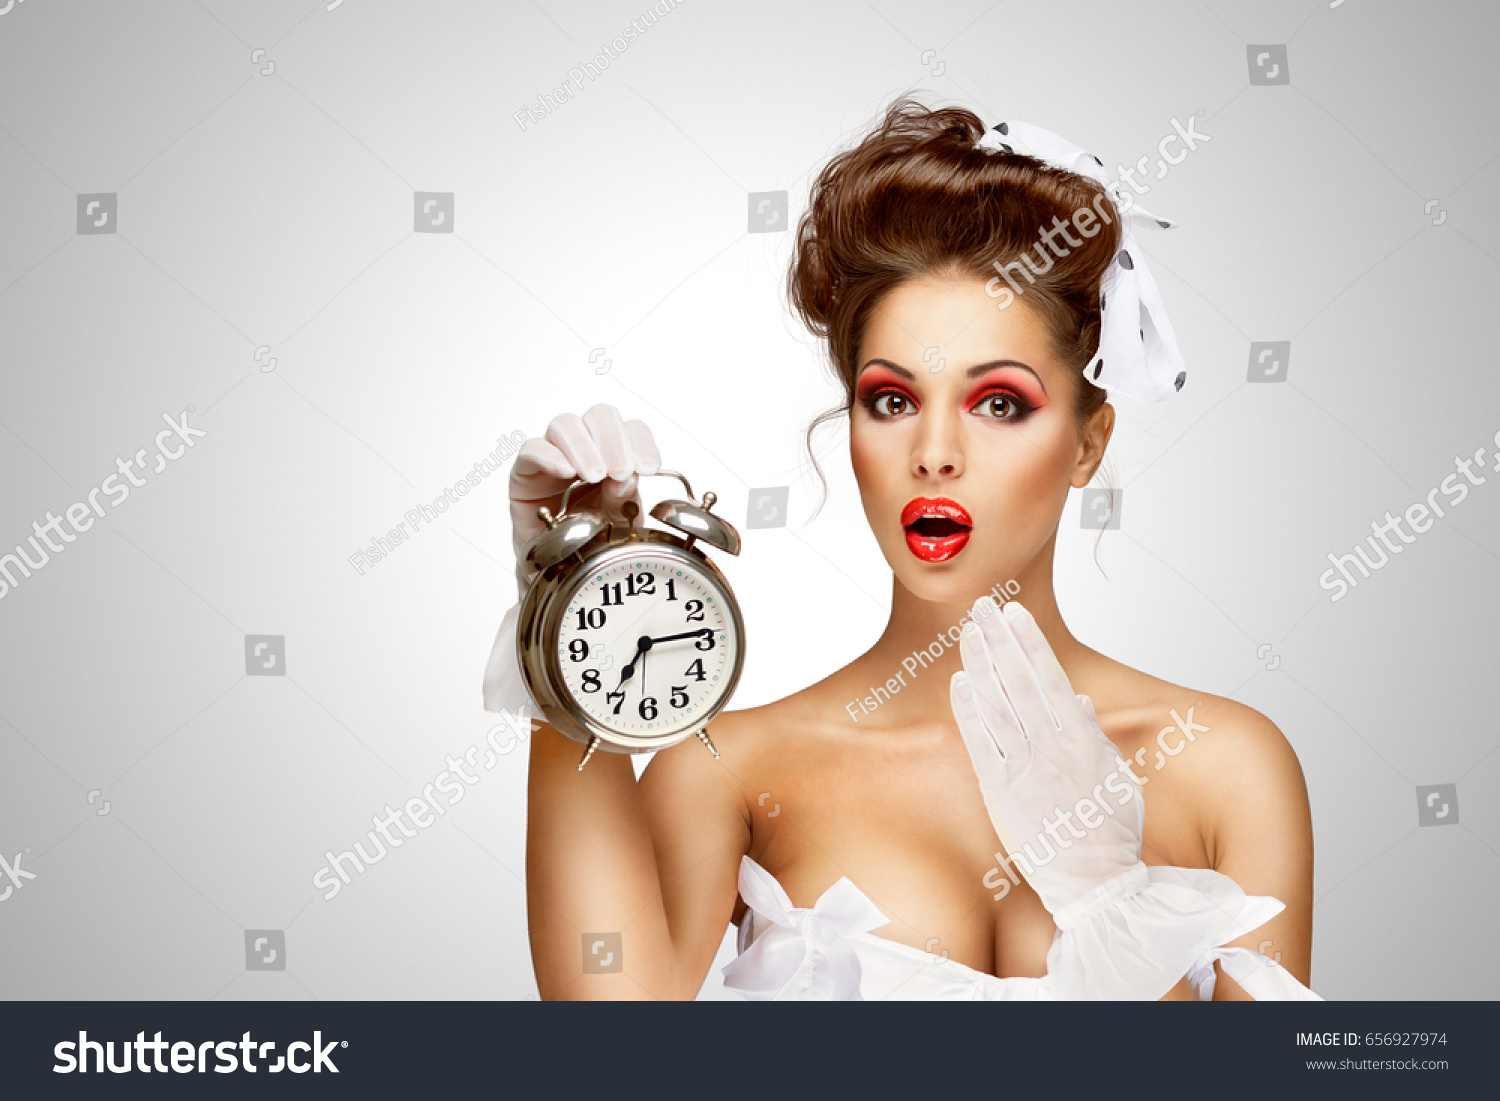 Pin-up girl clock vintage